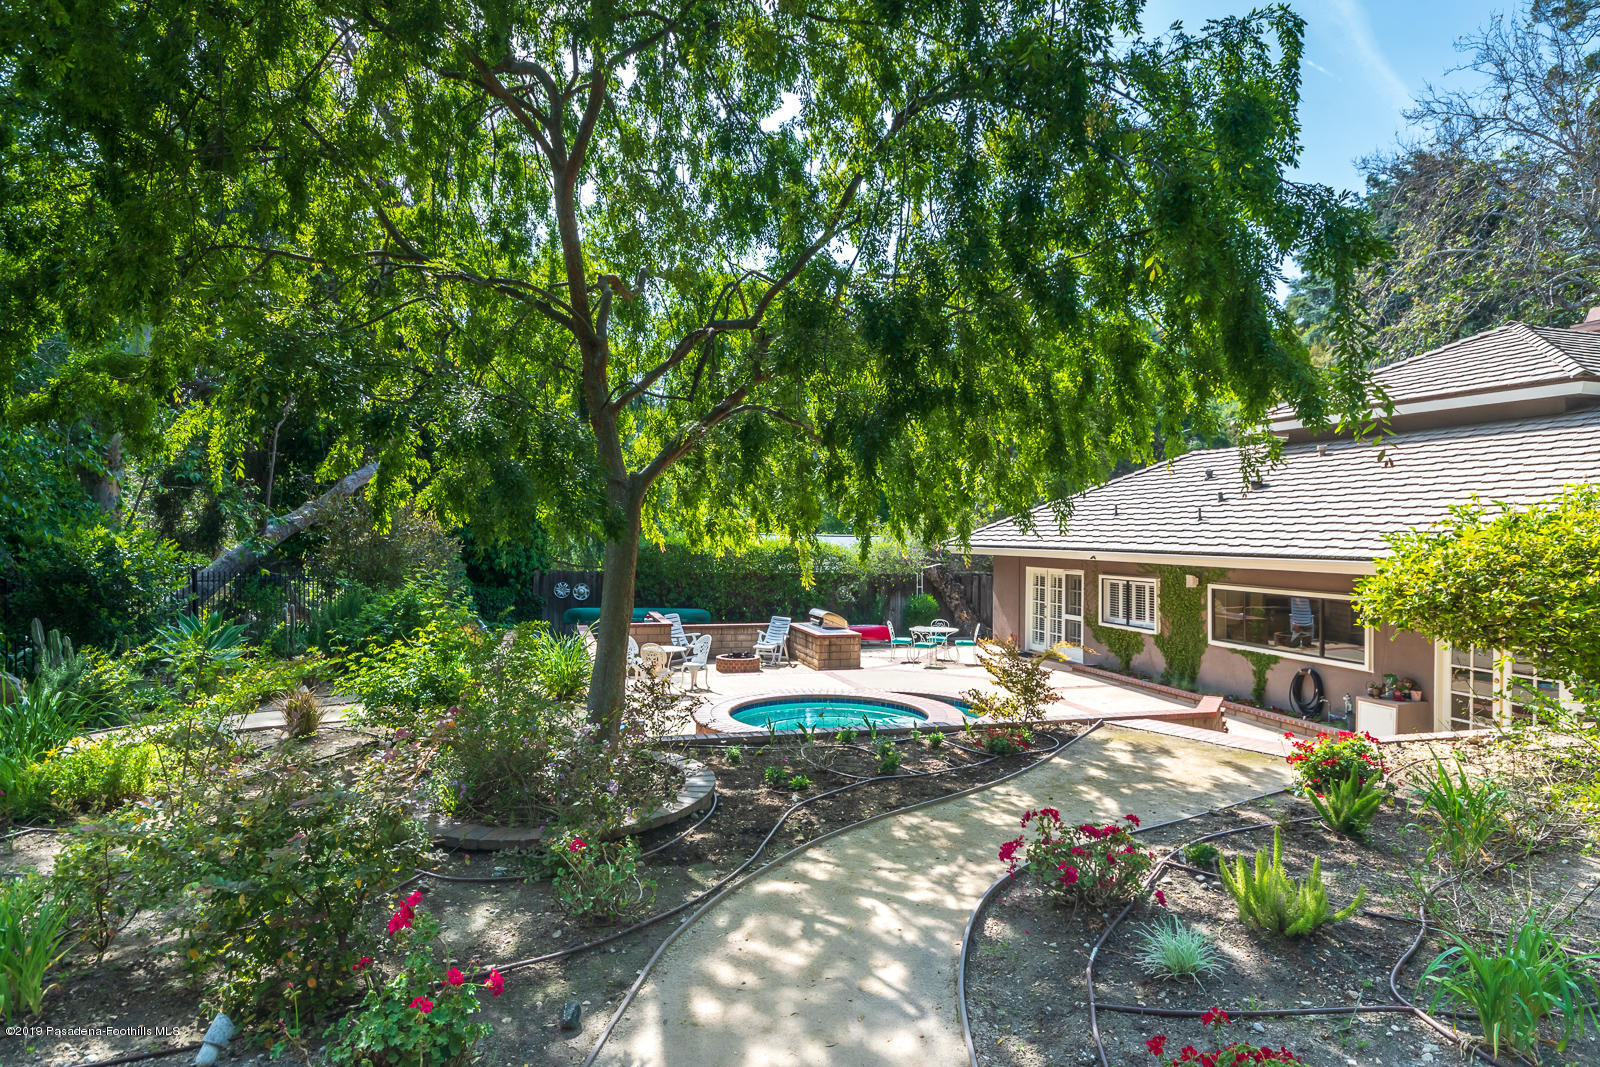 5217 Jessen Drive, La Canada Flintridge, California